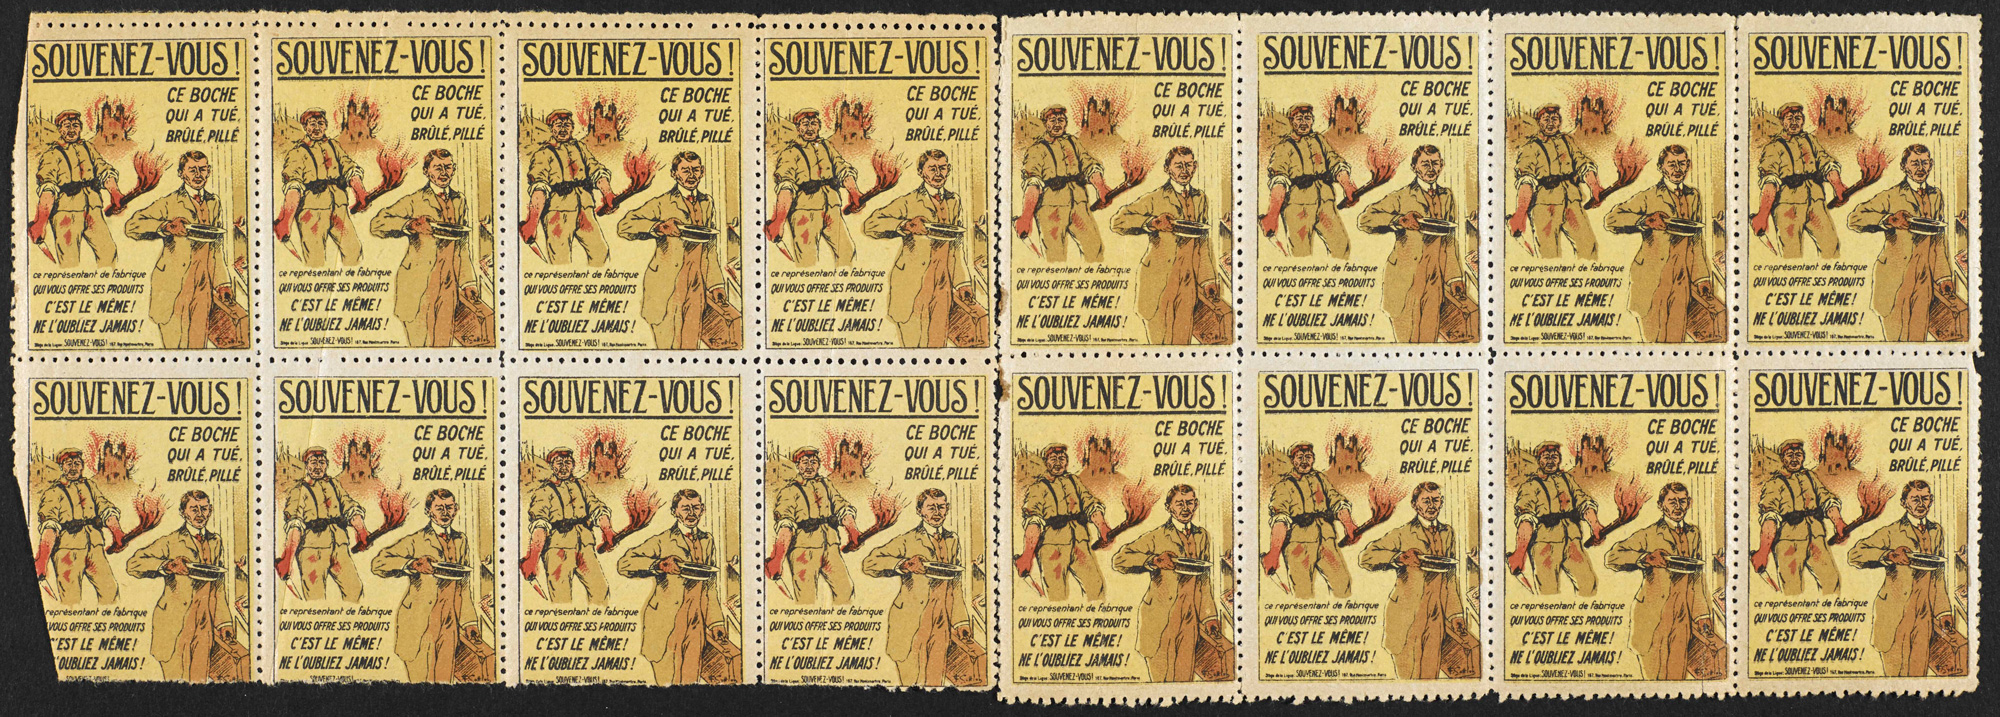 Stamps from a set produced by the French league Souvenez-vous (French for 'remember'), which aimed to perpetuate the memory of German crimes after the war.